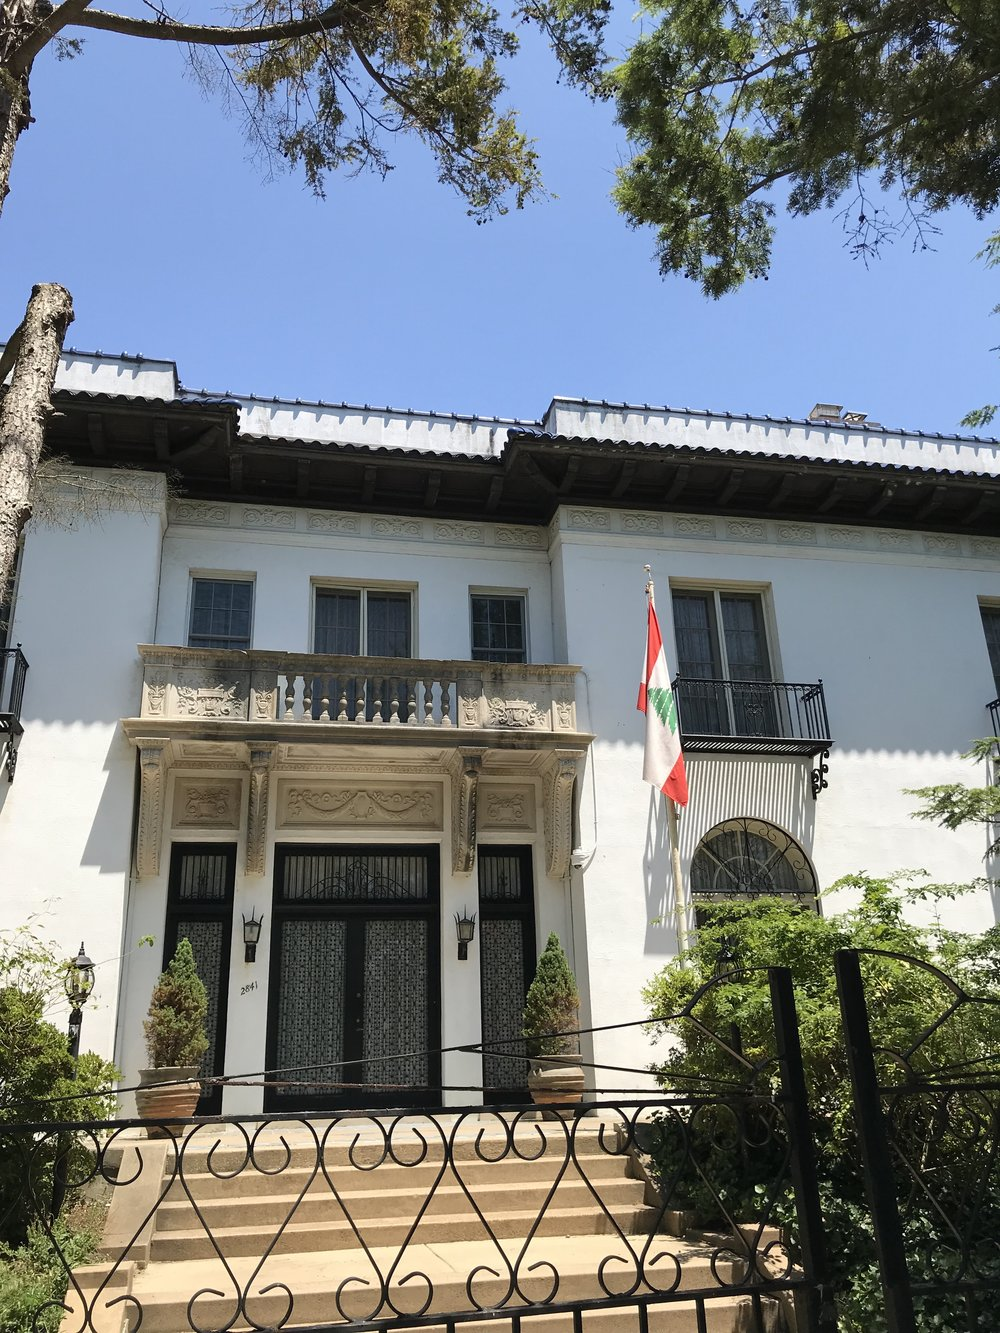 The Residence of the Ambassador of Lebanon.